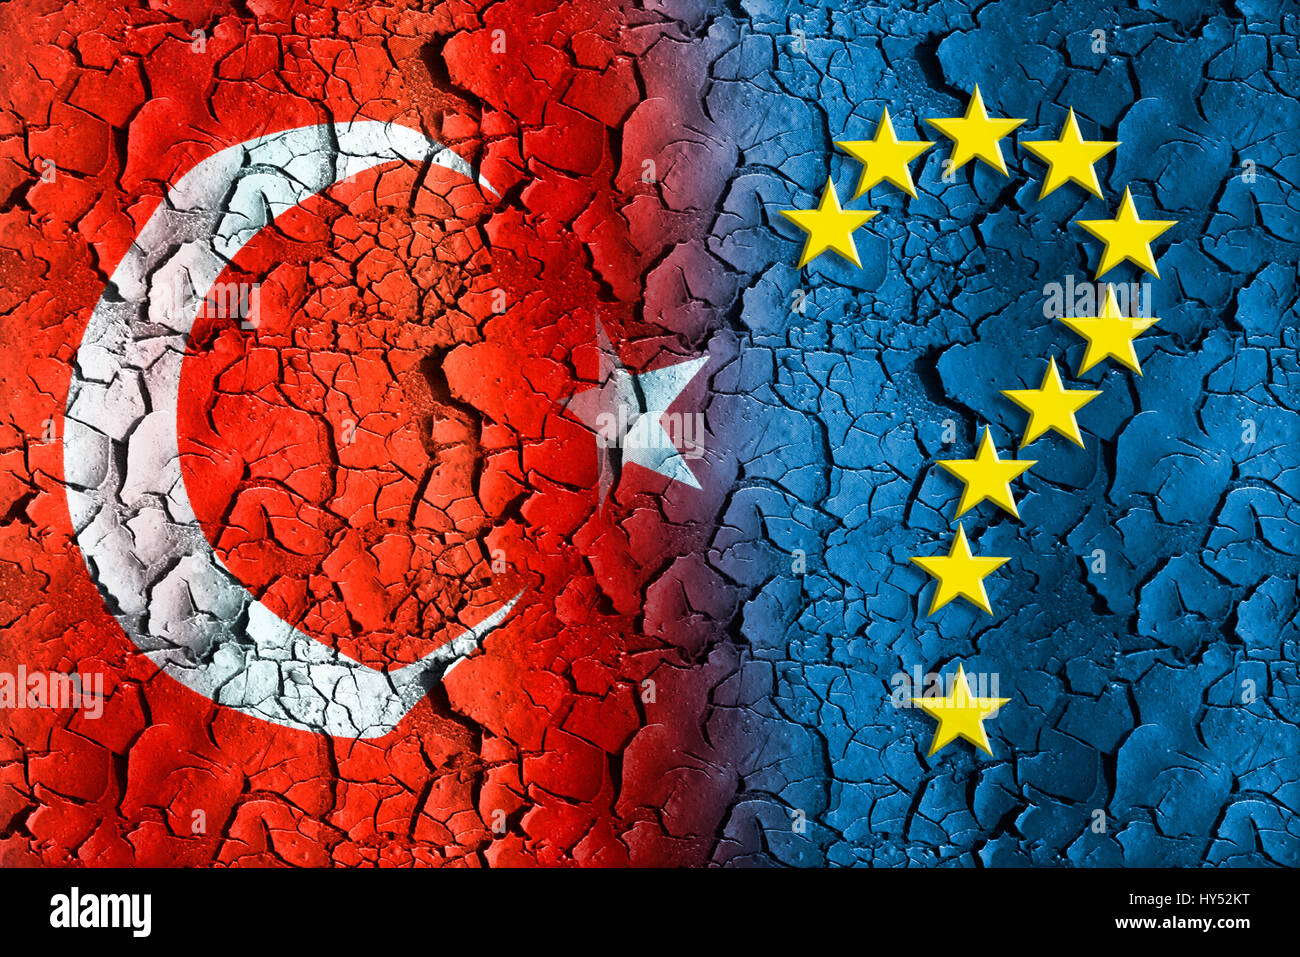 Flag of Turkey on flaking off reason with EU stars in the form of a question mark, Fahne der Tuerkei auf abblaetterndem Stock Photo